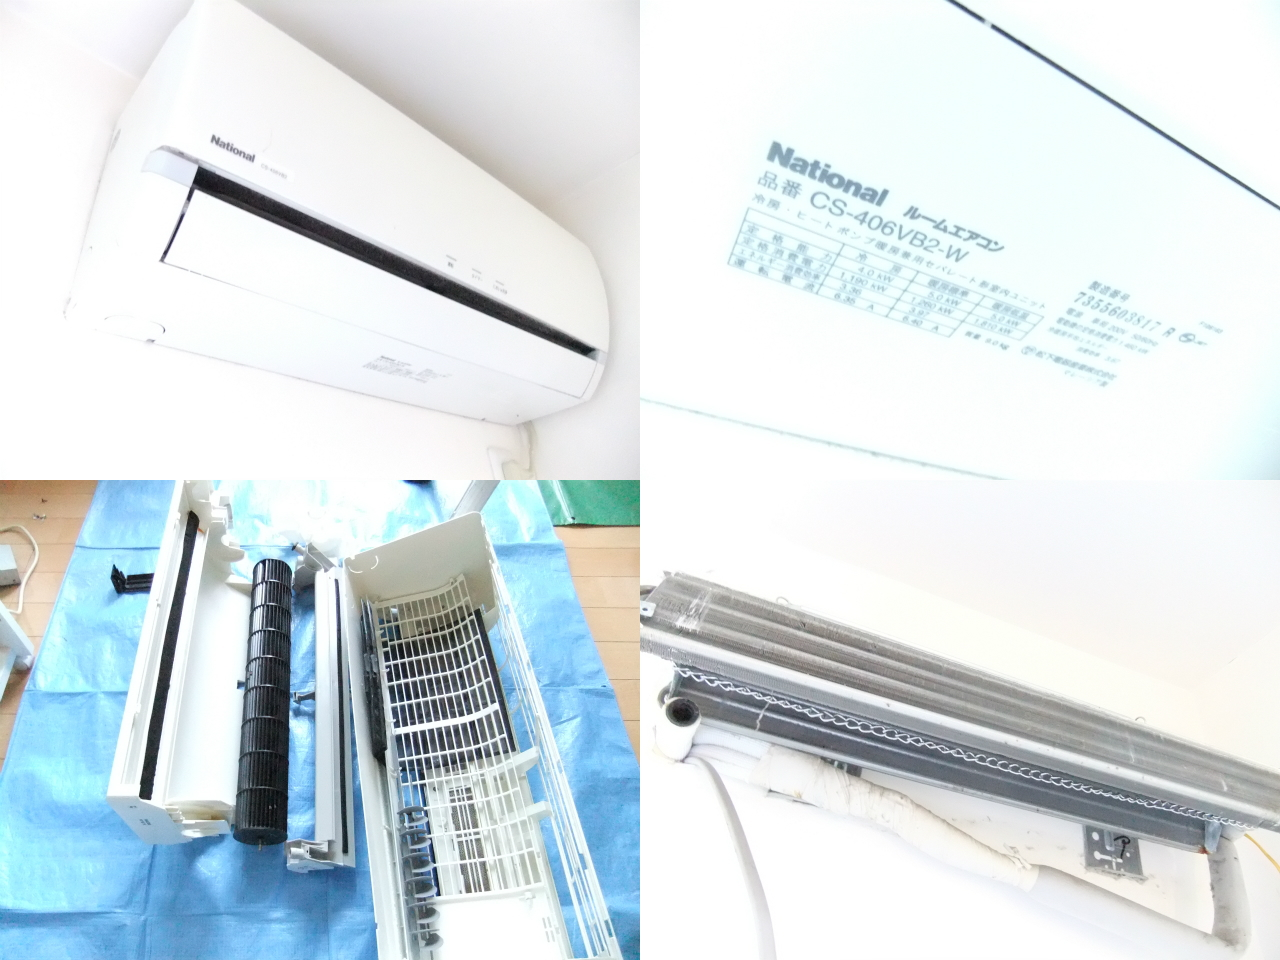 http://ajras.net/images/120820-aircon1.jpg